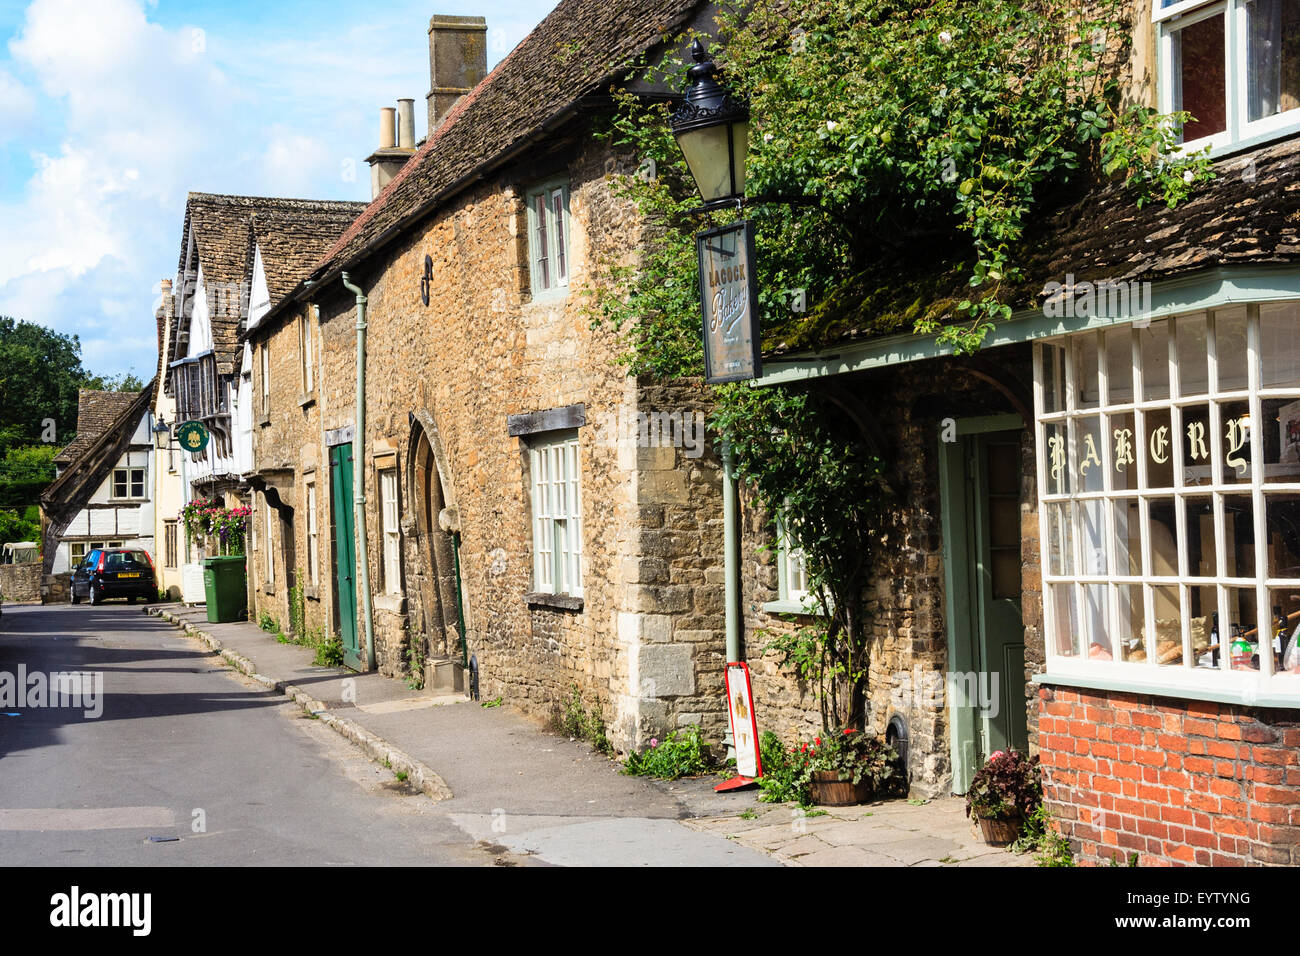 England, Lacock, Cotswolds. Church Street, 15th century - 18th century Cotswold stone buildings, tourists walking - Stock Image